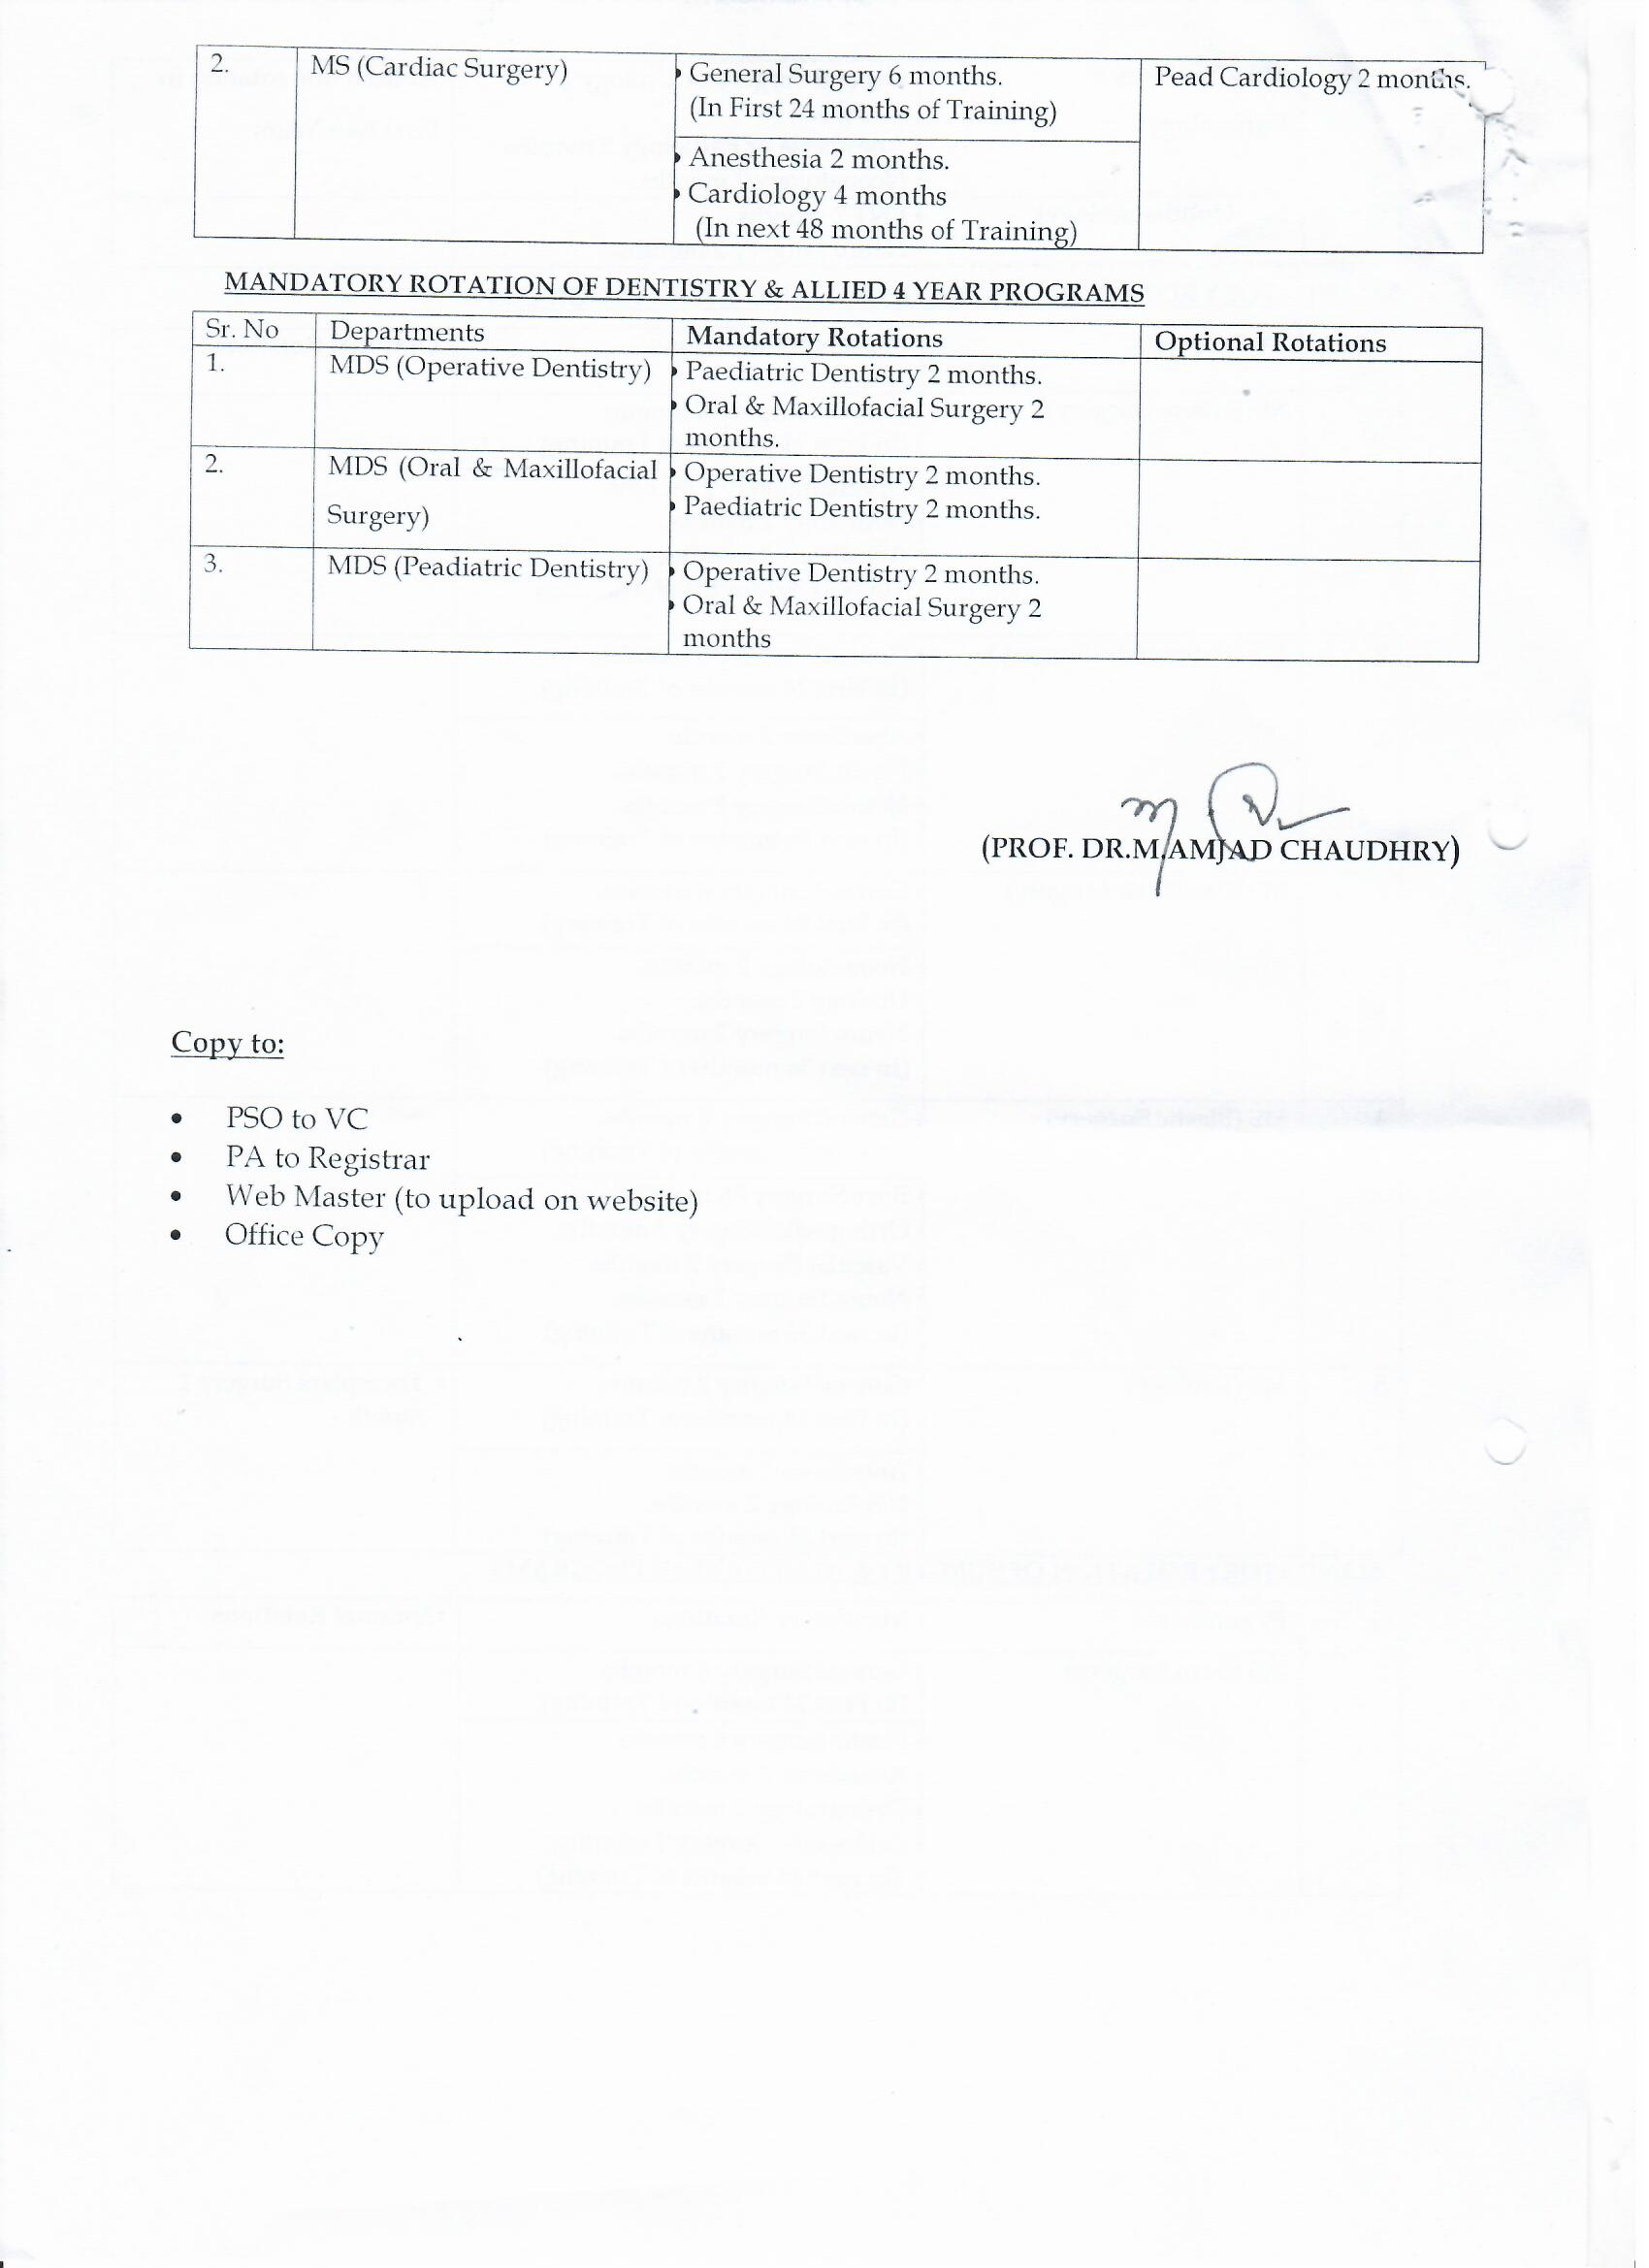 Schedule of Mandatory Rotations for Residents of MS/MD/MDS